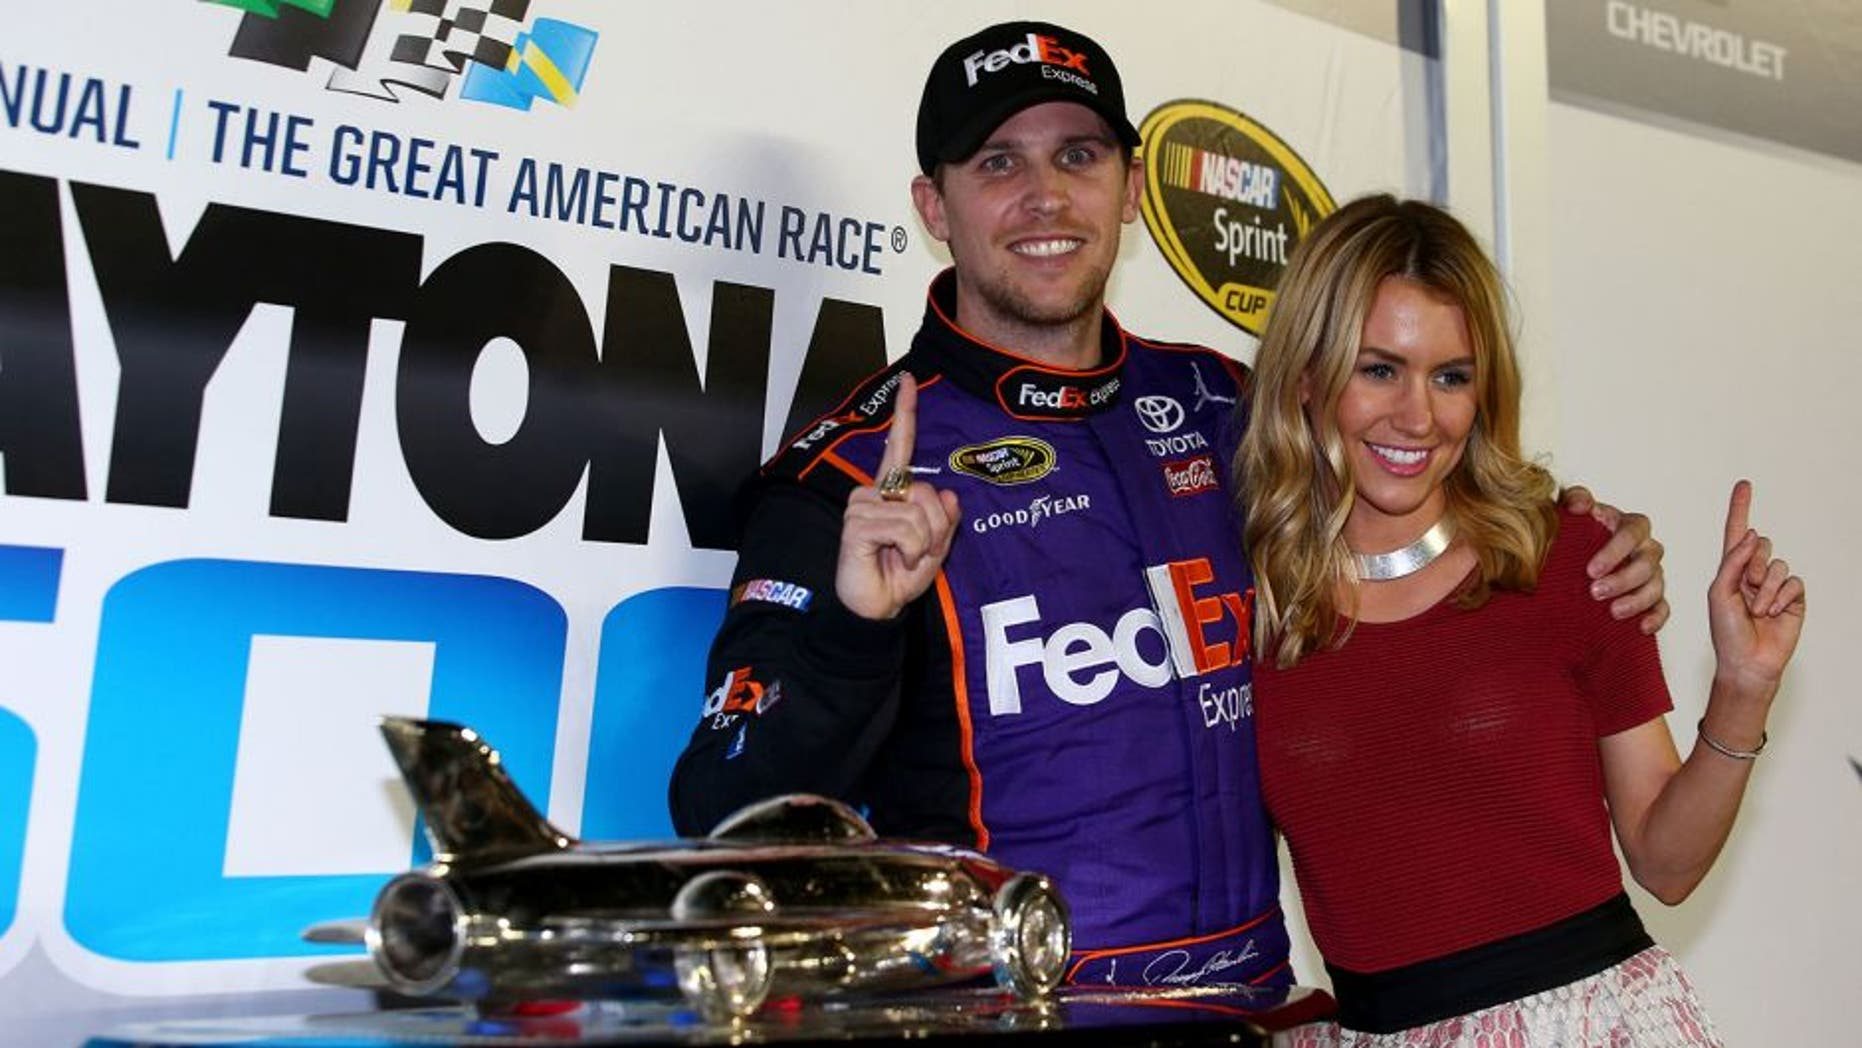 DAYTONA BEACH, FL - FEBRUARY 21: Denny Hamlin, driver of the #11 FedEx Express Toyota, celebrates in Victory Lane with his wife, Jordan Fish after winning the NASCAR Sprint Cup Series DAYTONA 500 at Daytona International Speedway on February 21, 2016 in Daytona Beach, Florida. (Photo by Sarah Crabill/NASCAR via Getty Images)